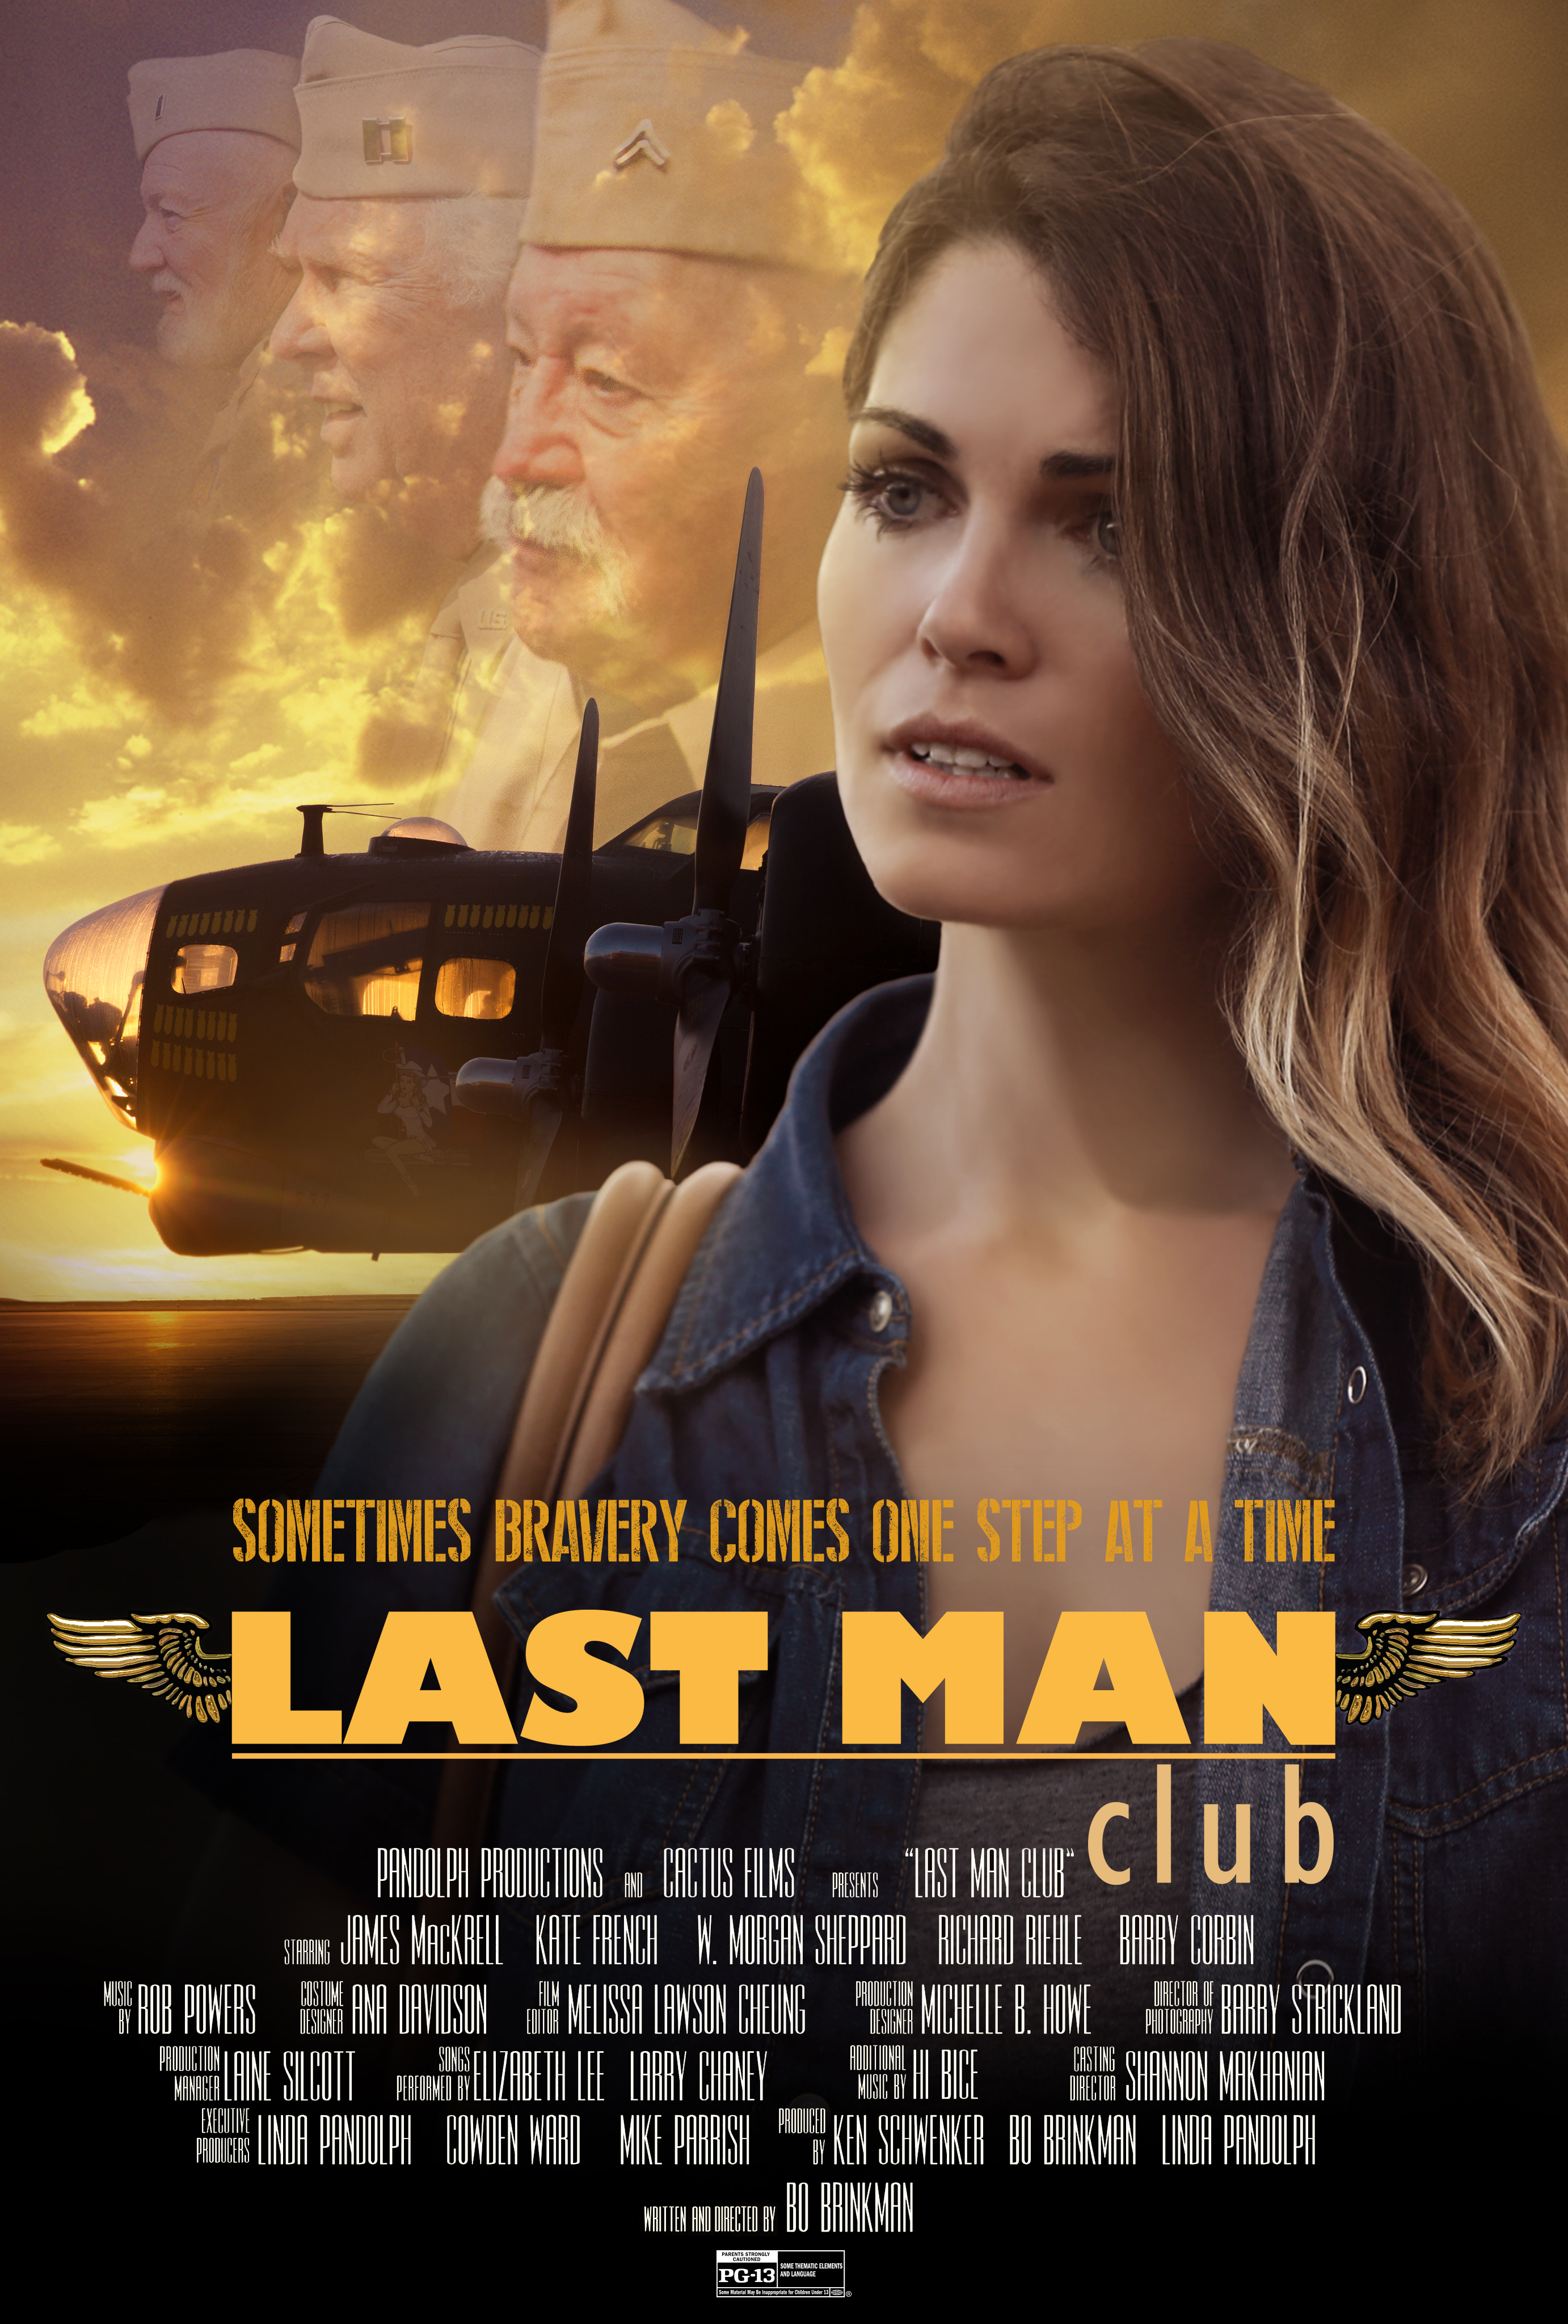 Recently Amazon Prime recommended that I might like the movie Last Man Club. So tonight I watched it…